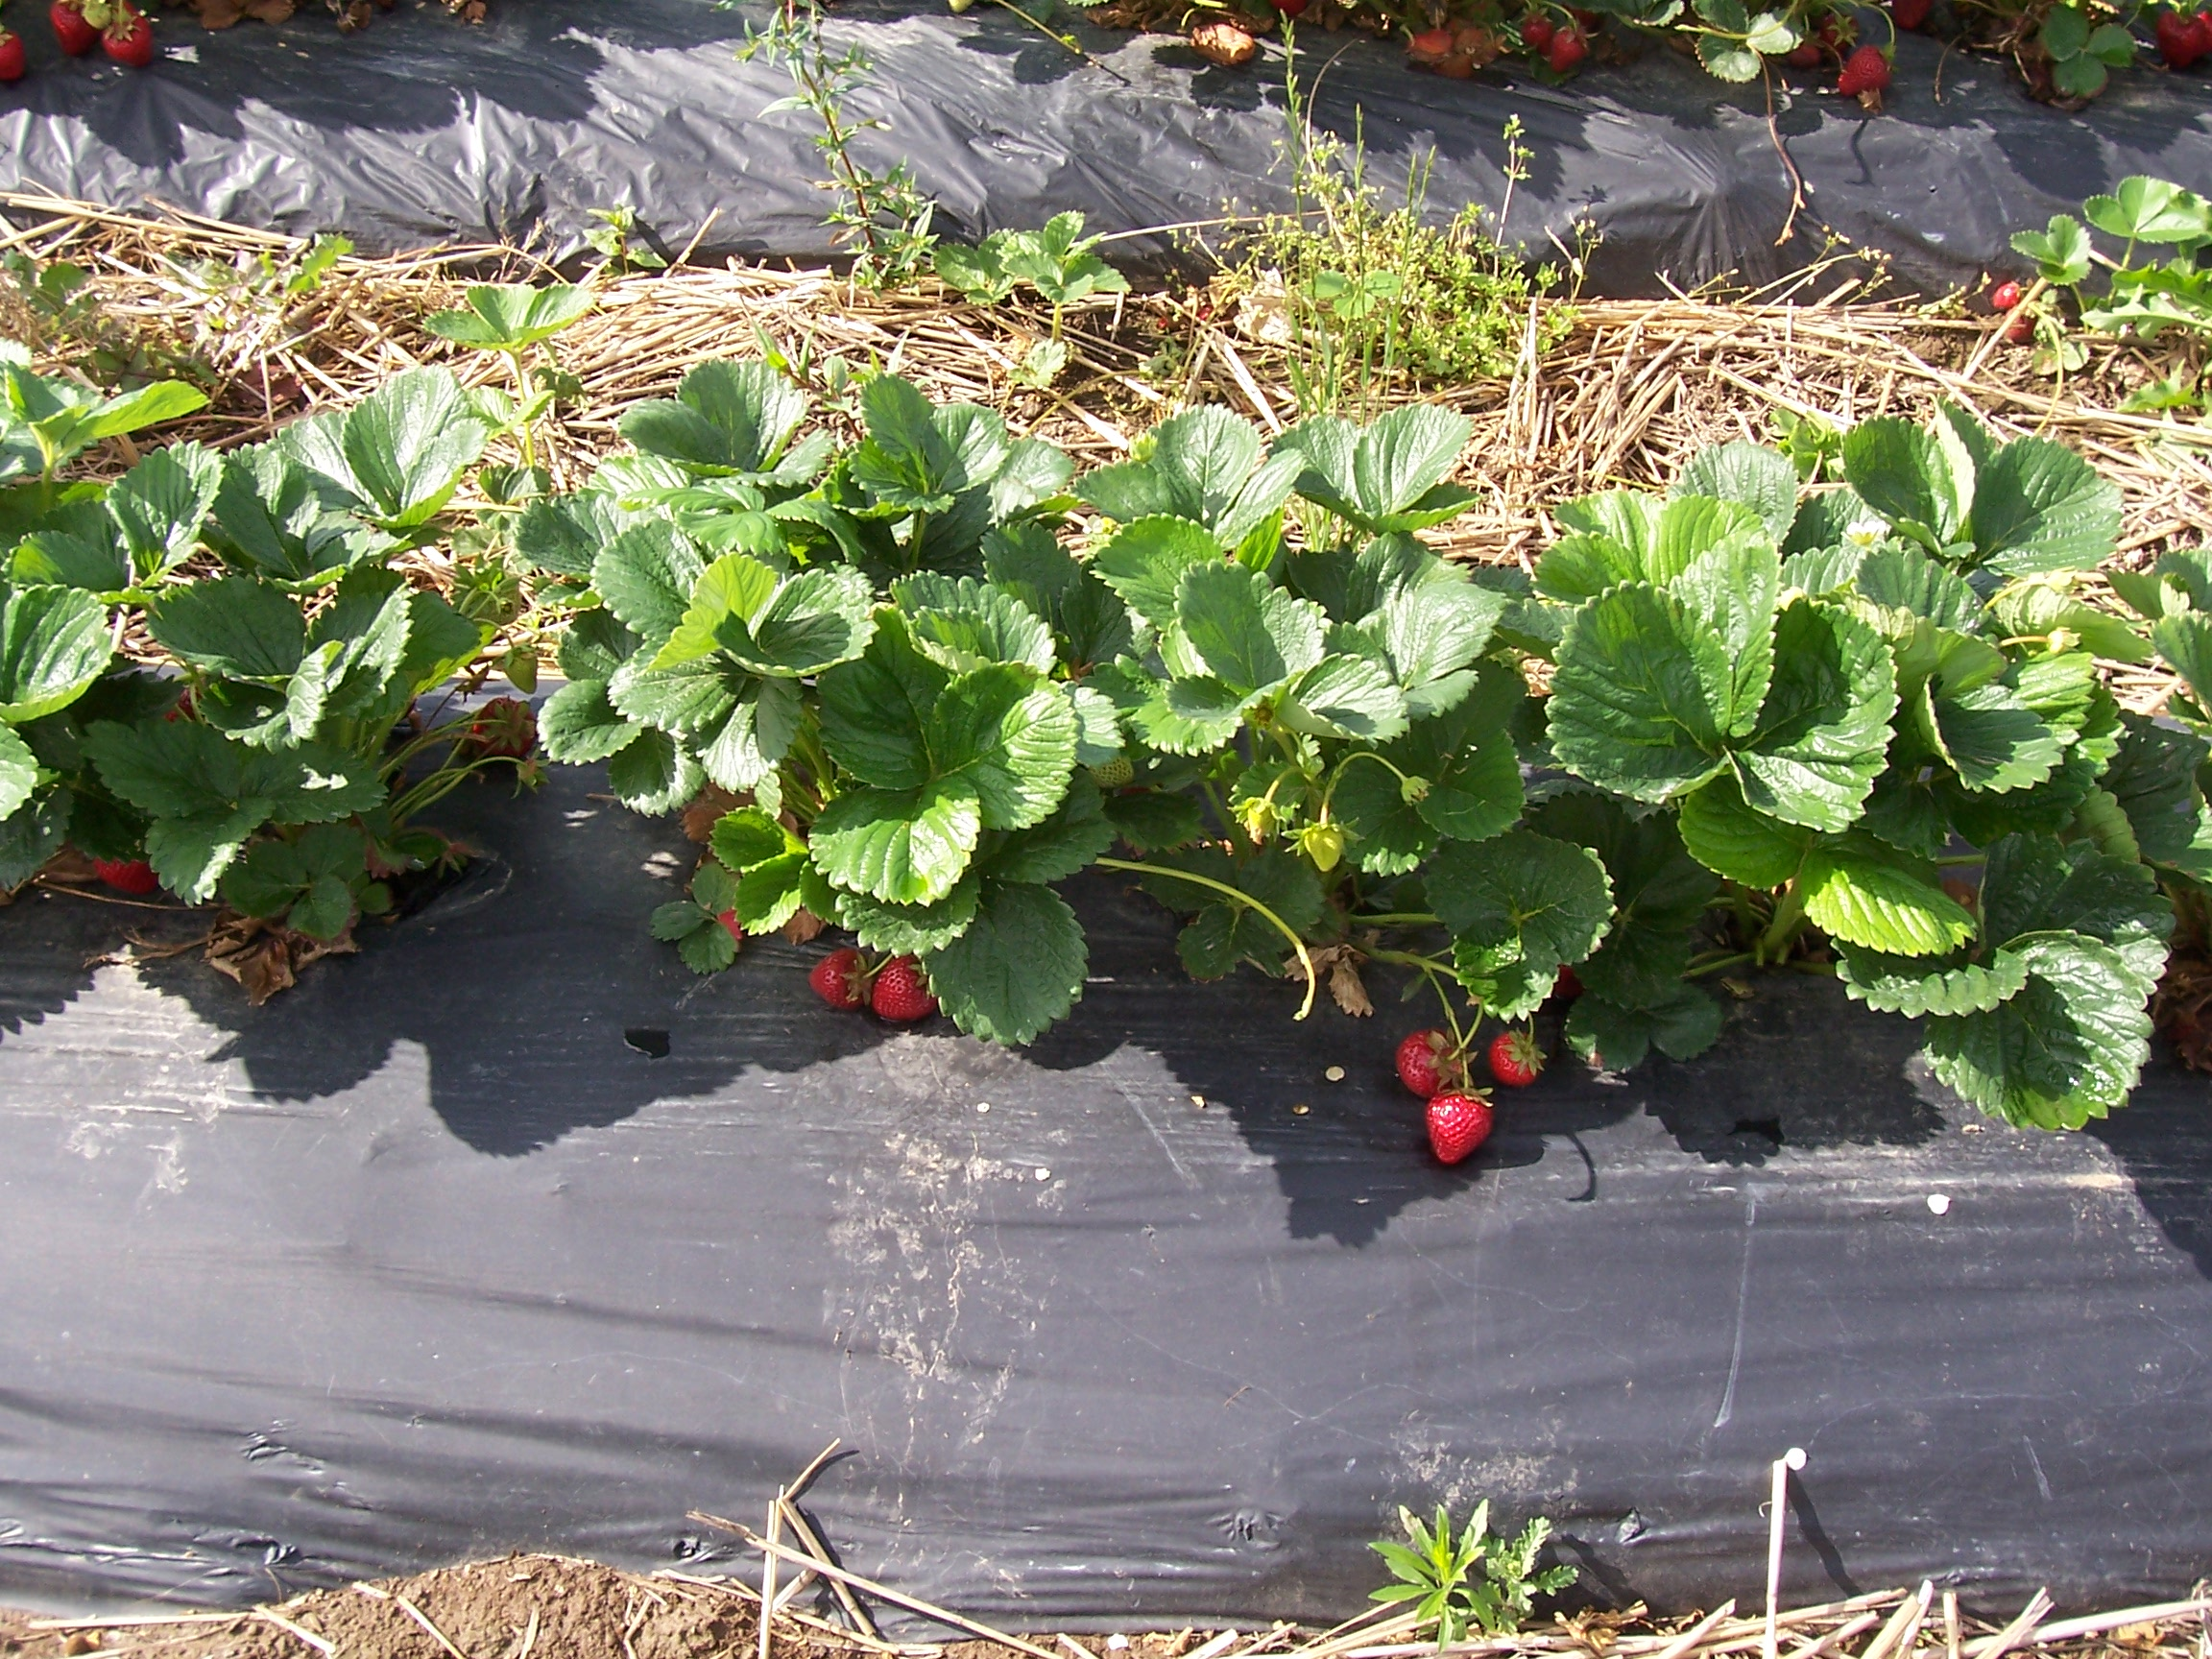 'Albion' strawberries growing in a hill system on raised beds covered with plastic mulch.